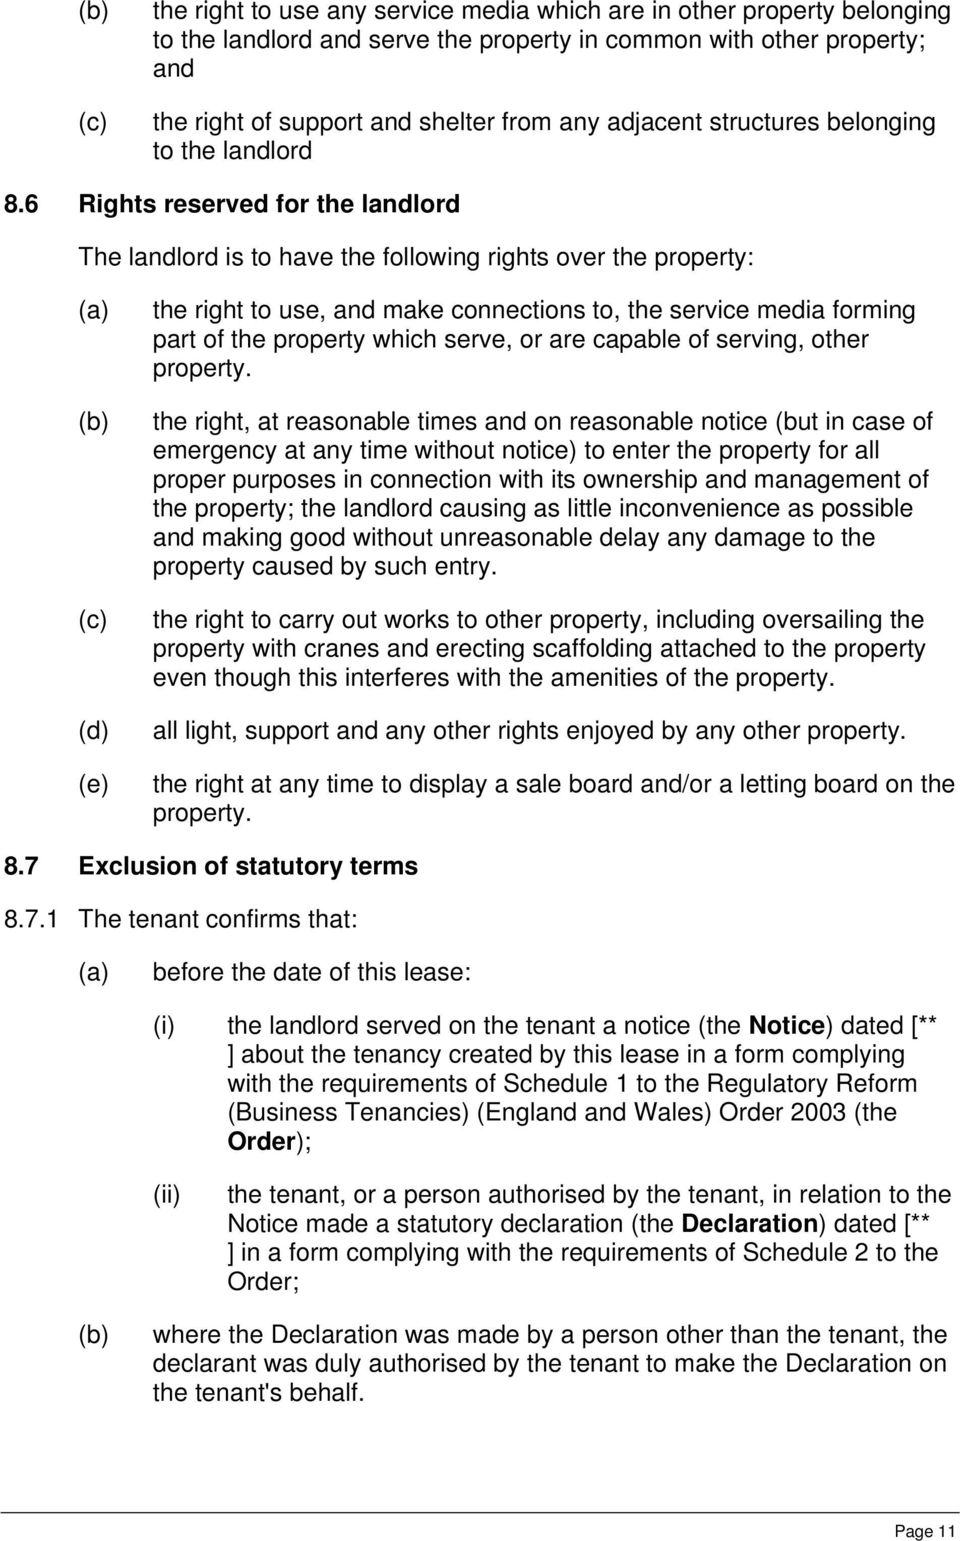 6 Rights reserved for the landlord The landlord is to have the following rights over the property: (c) (d) (e) the right to use, and make connections to, the service media forming part of the